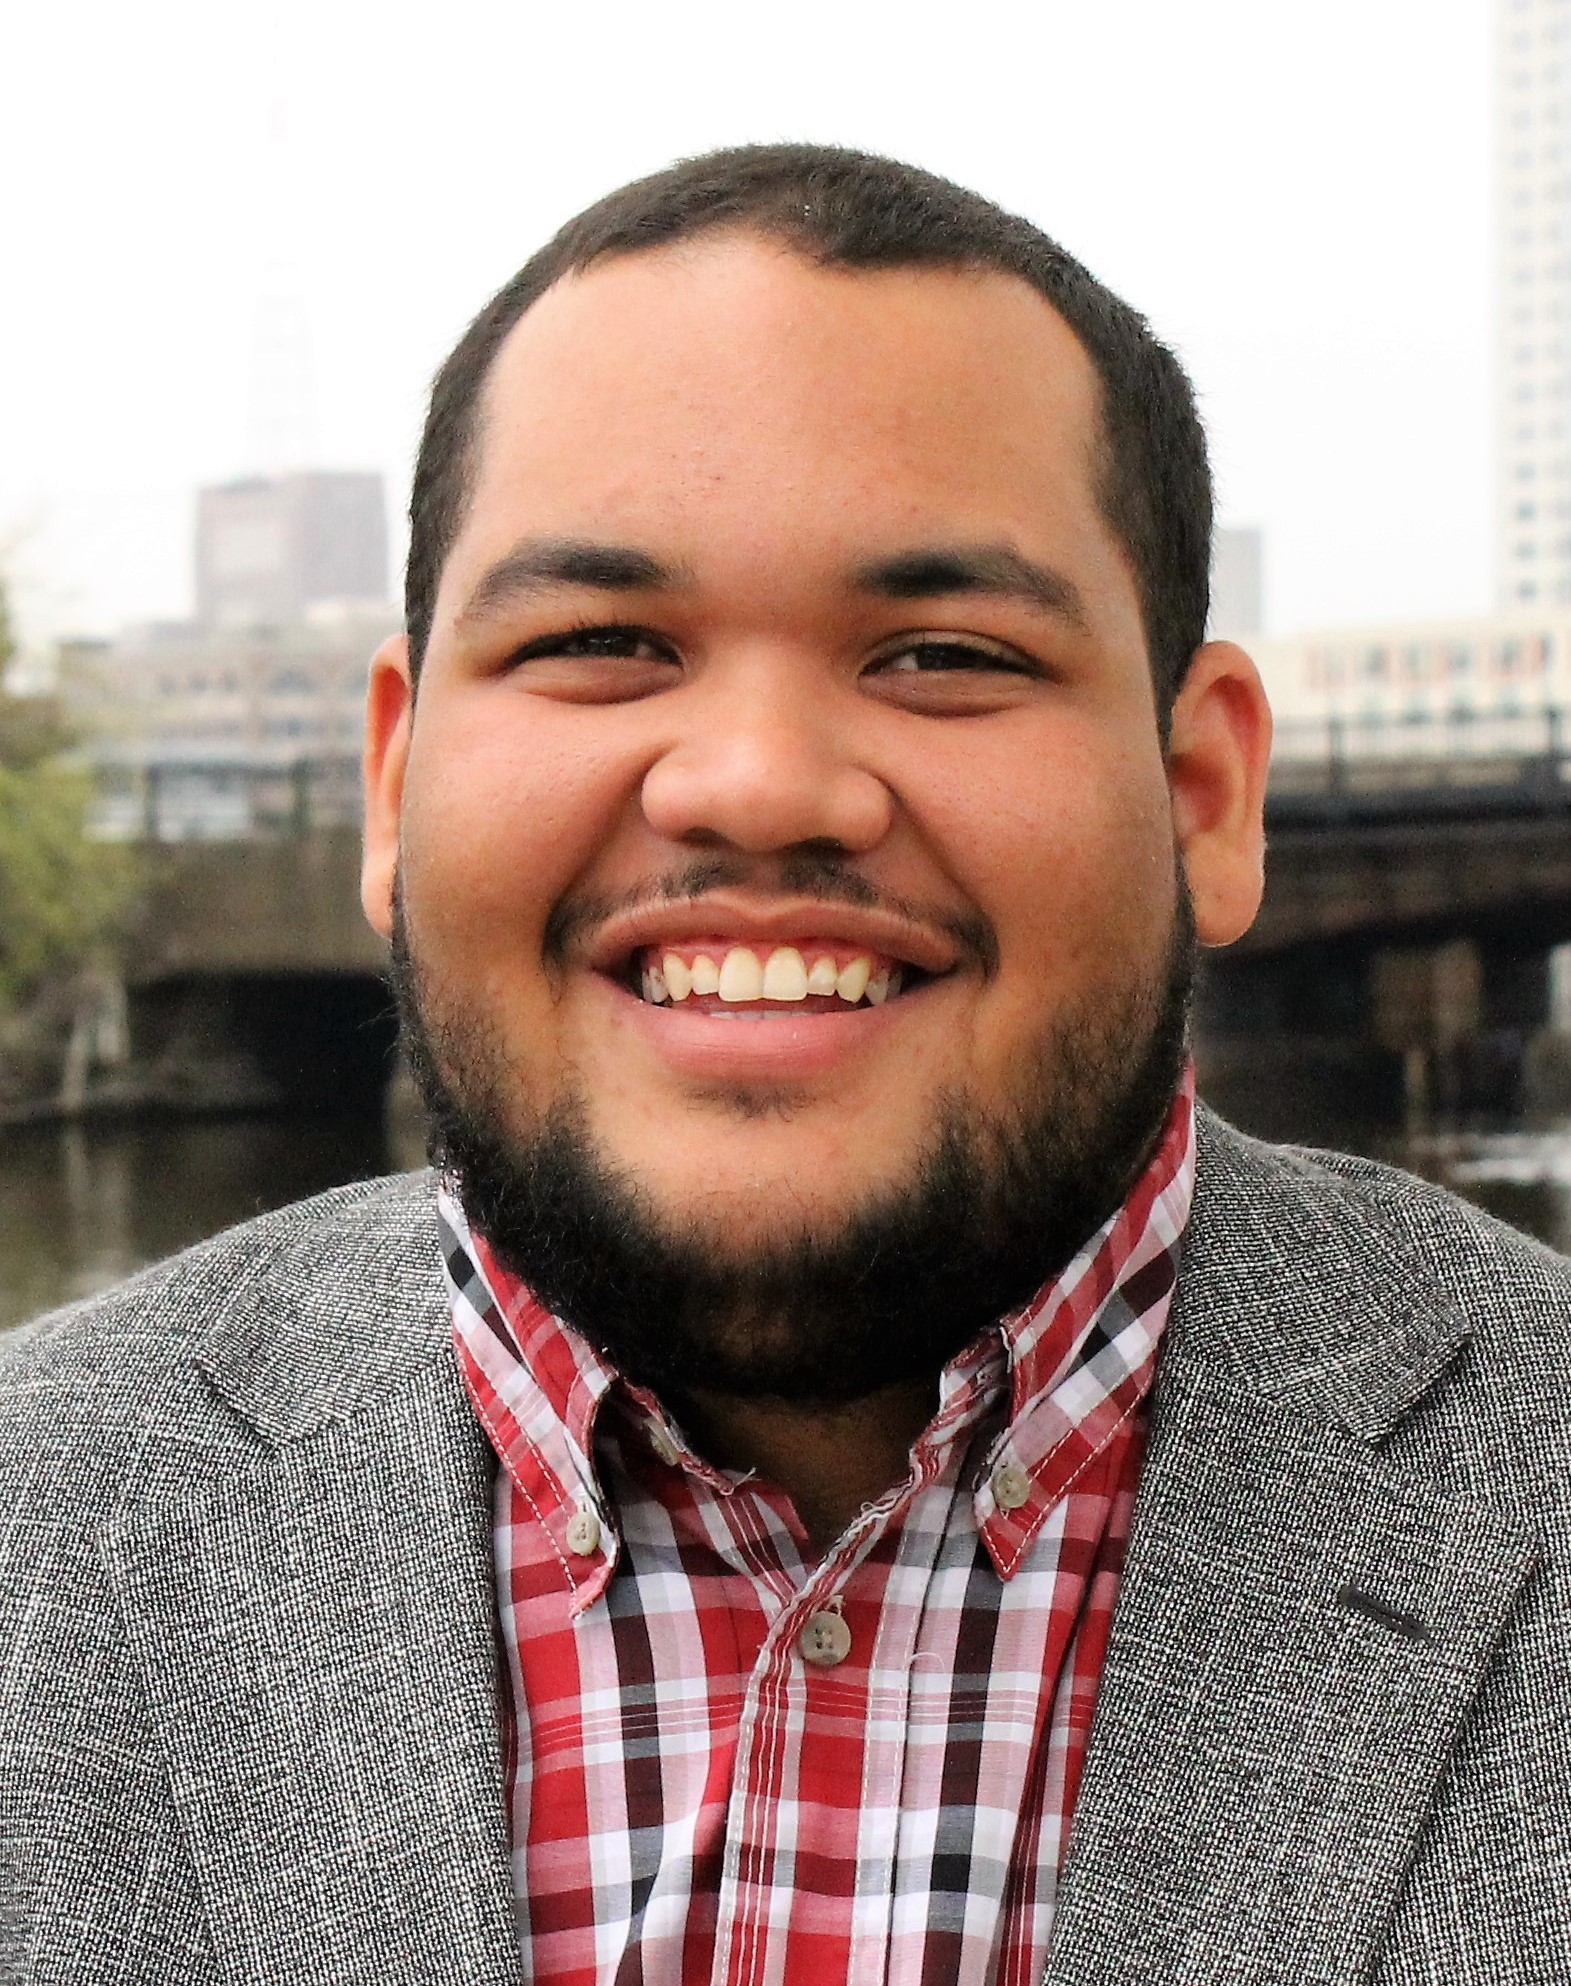 David Toles, Admissions Counselor and Multicultural Outreach